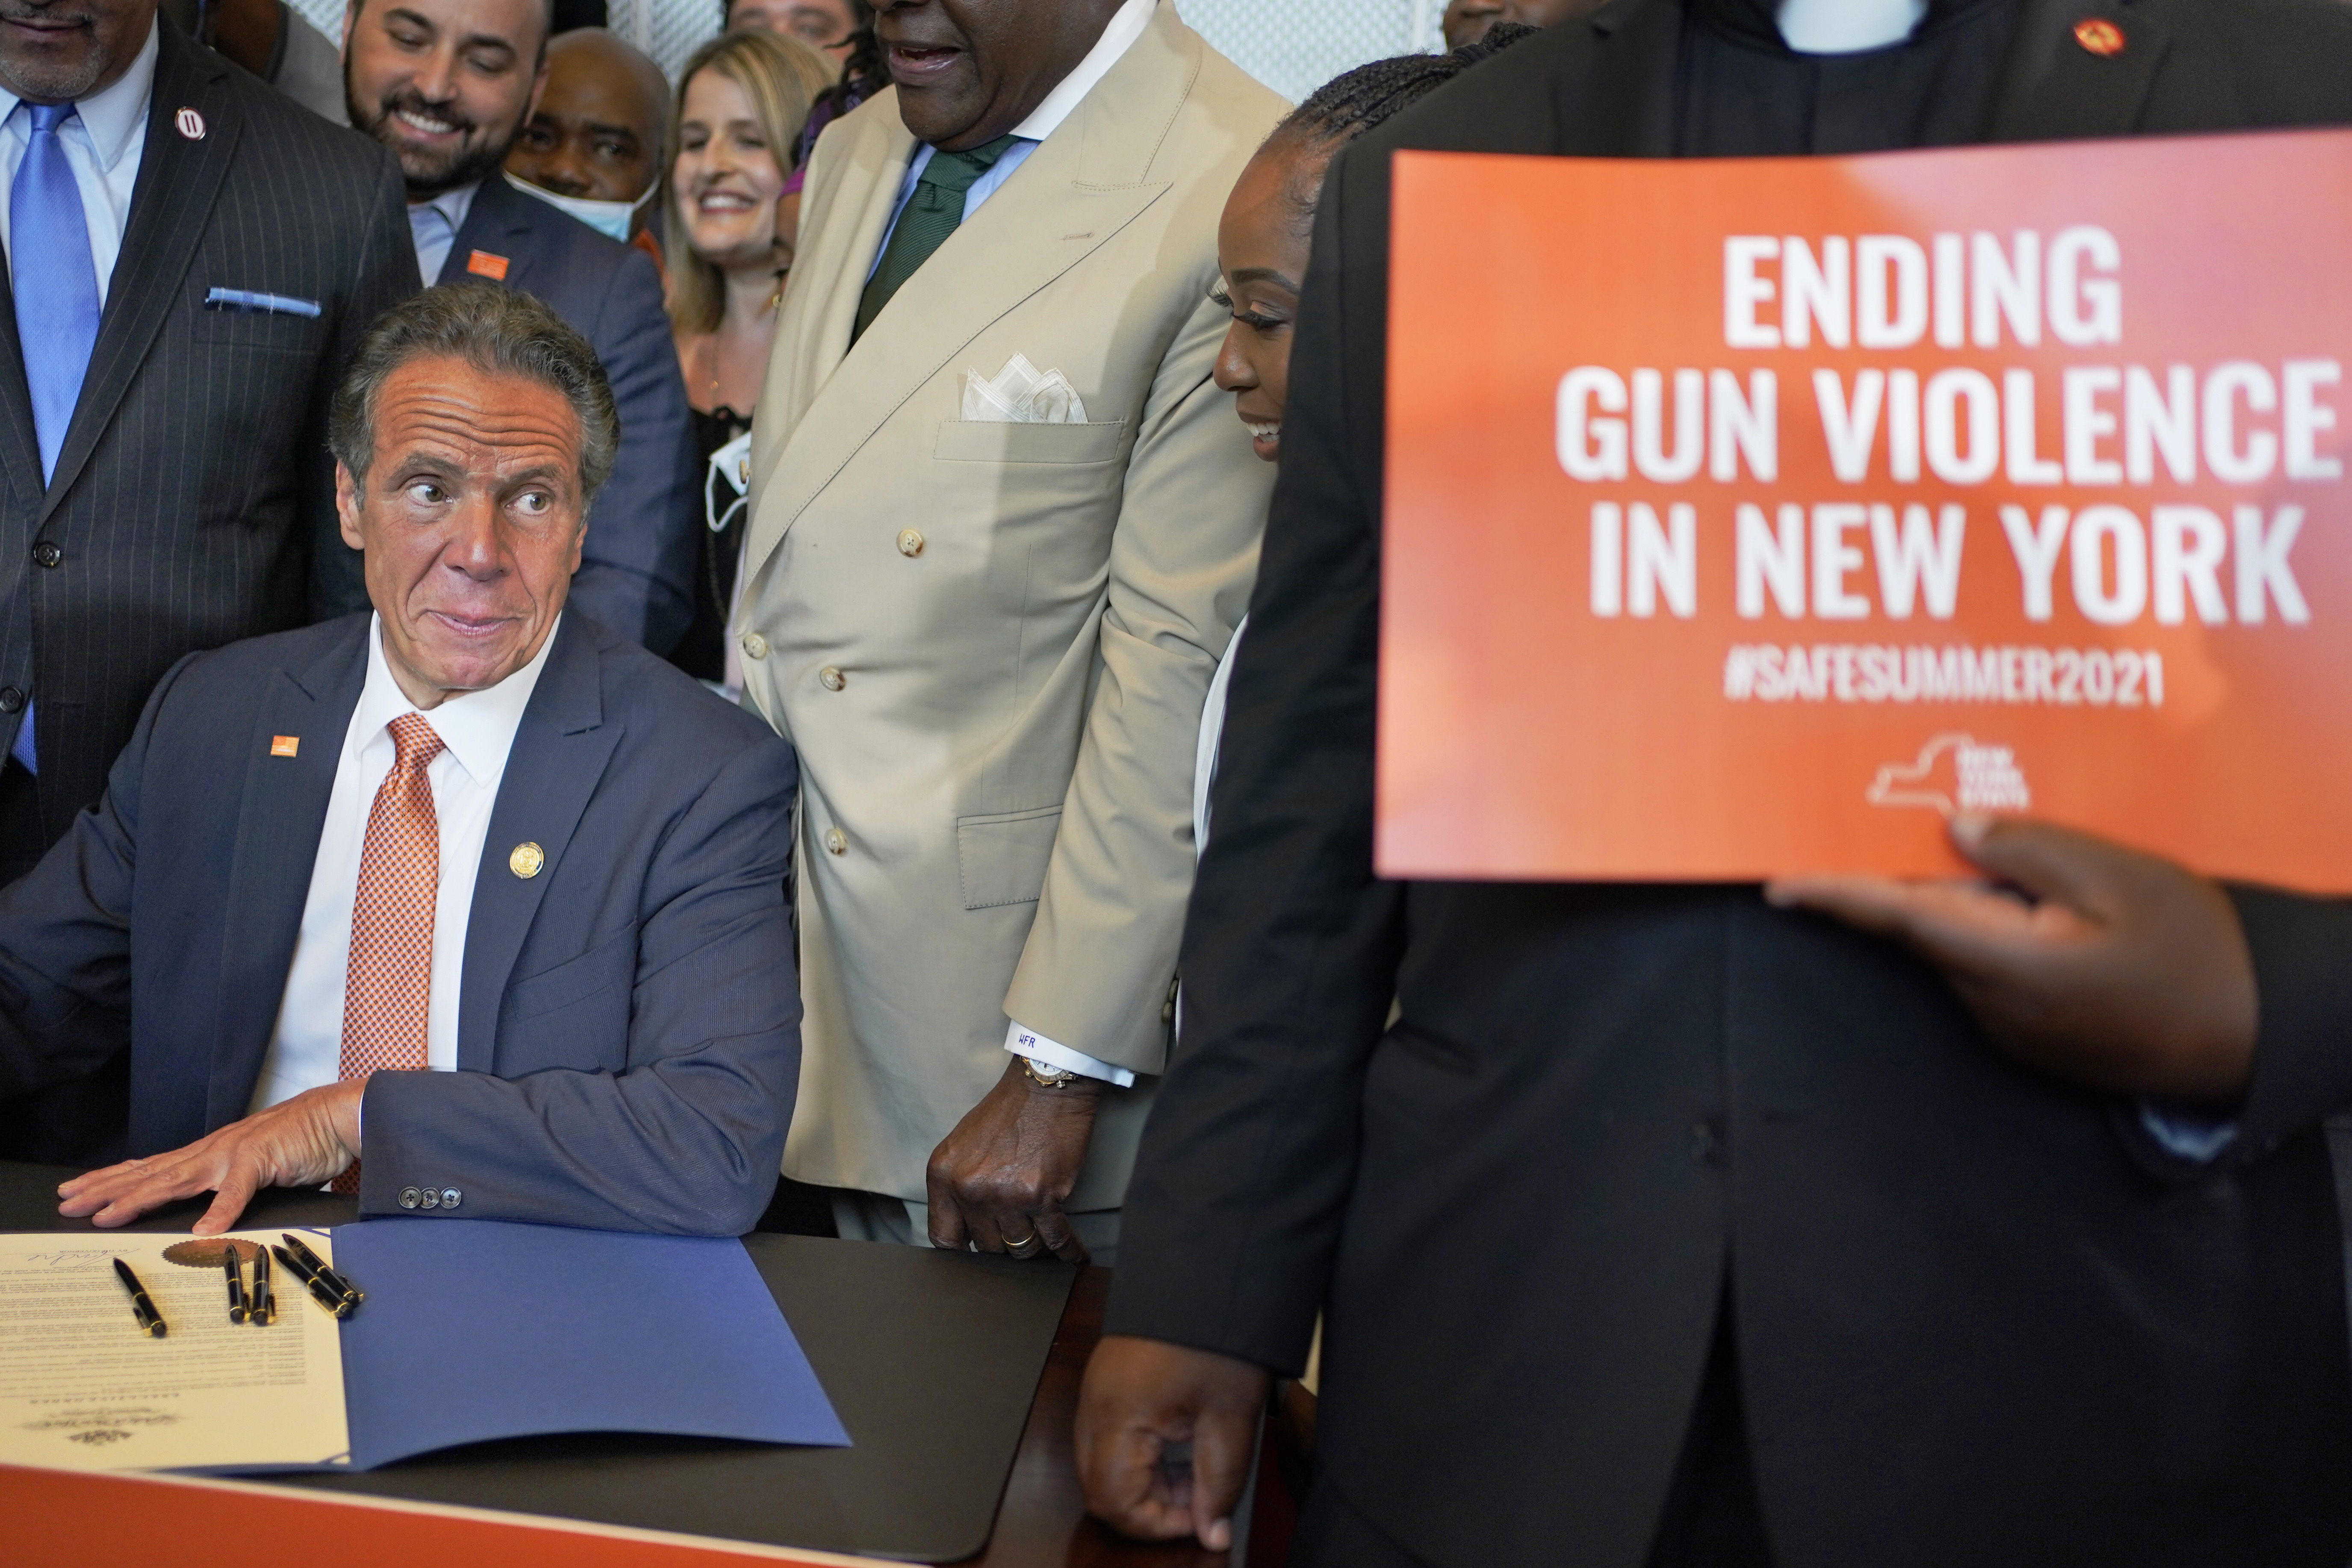 Surrounded by supporters and advocates, New York Gov. Andrew Cuomo signs legislation on gun control in New York on Tuesday. Cuomo signed two pieces of legislation to combat gun violence in New York state.